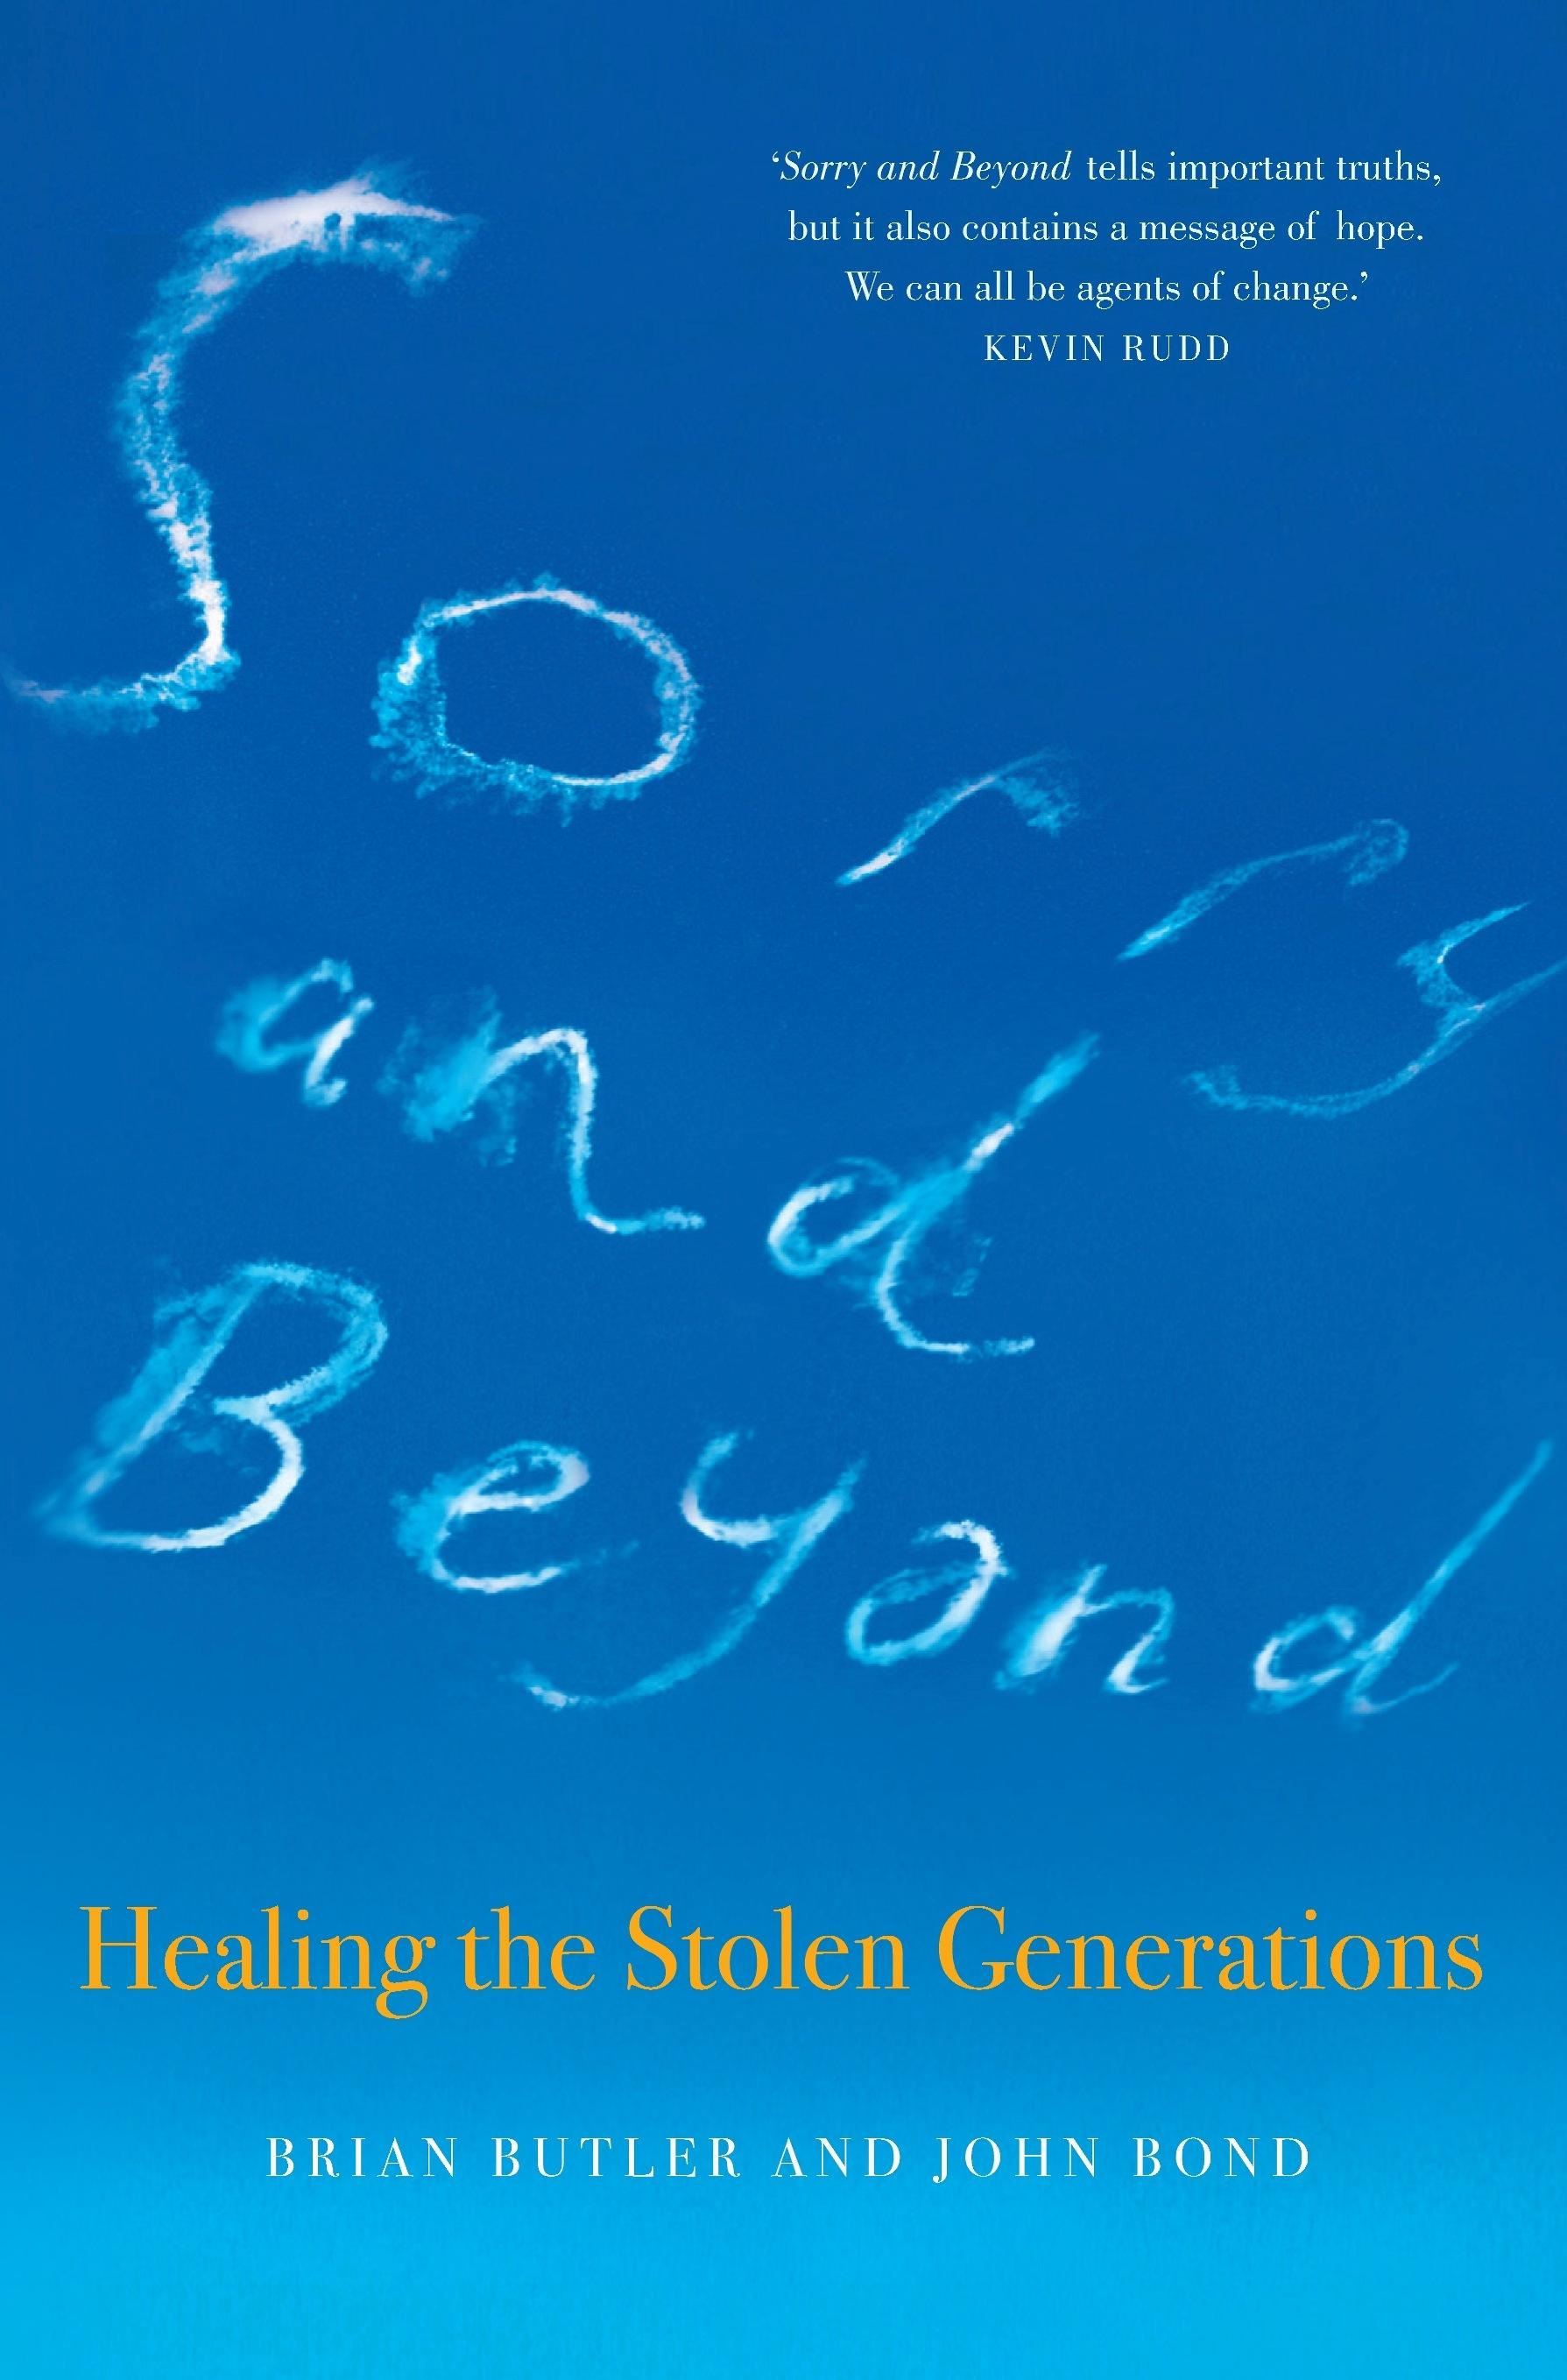 Sorry and Beyond: Healing theStolenGenerations